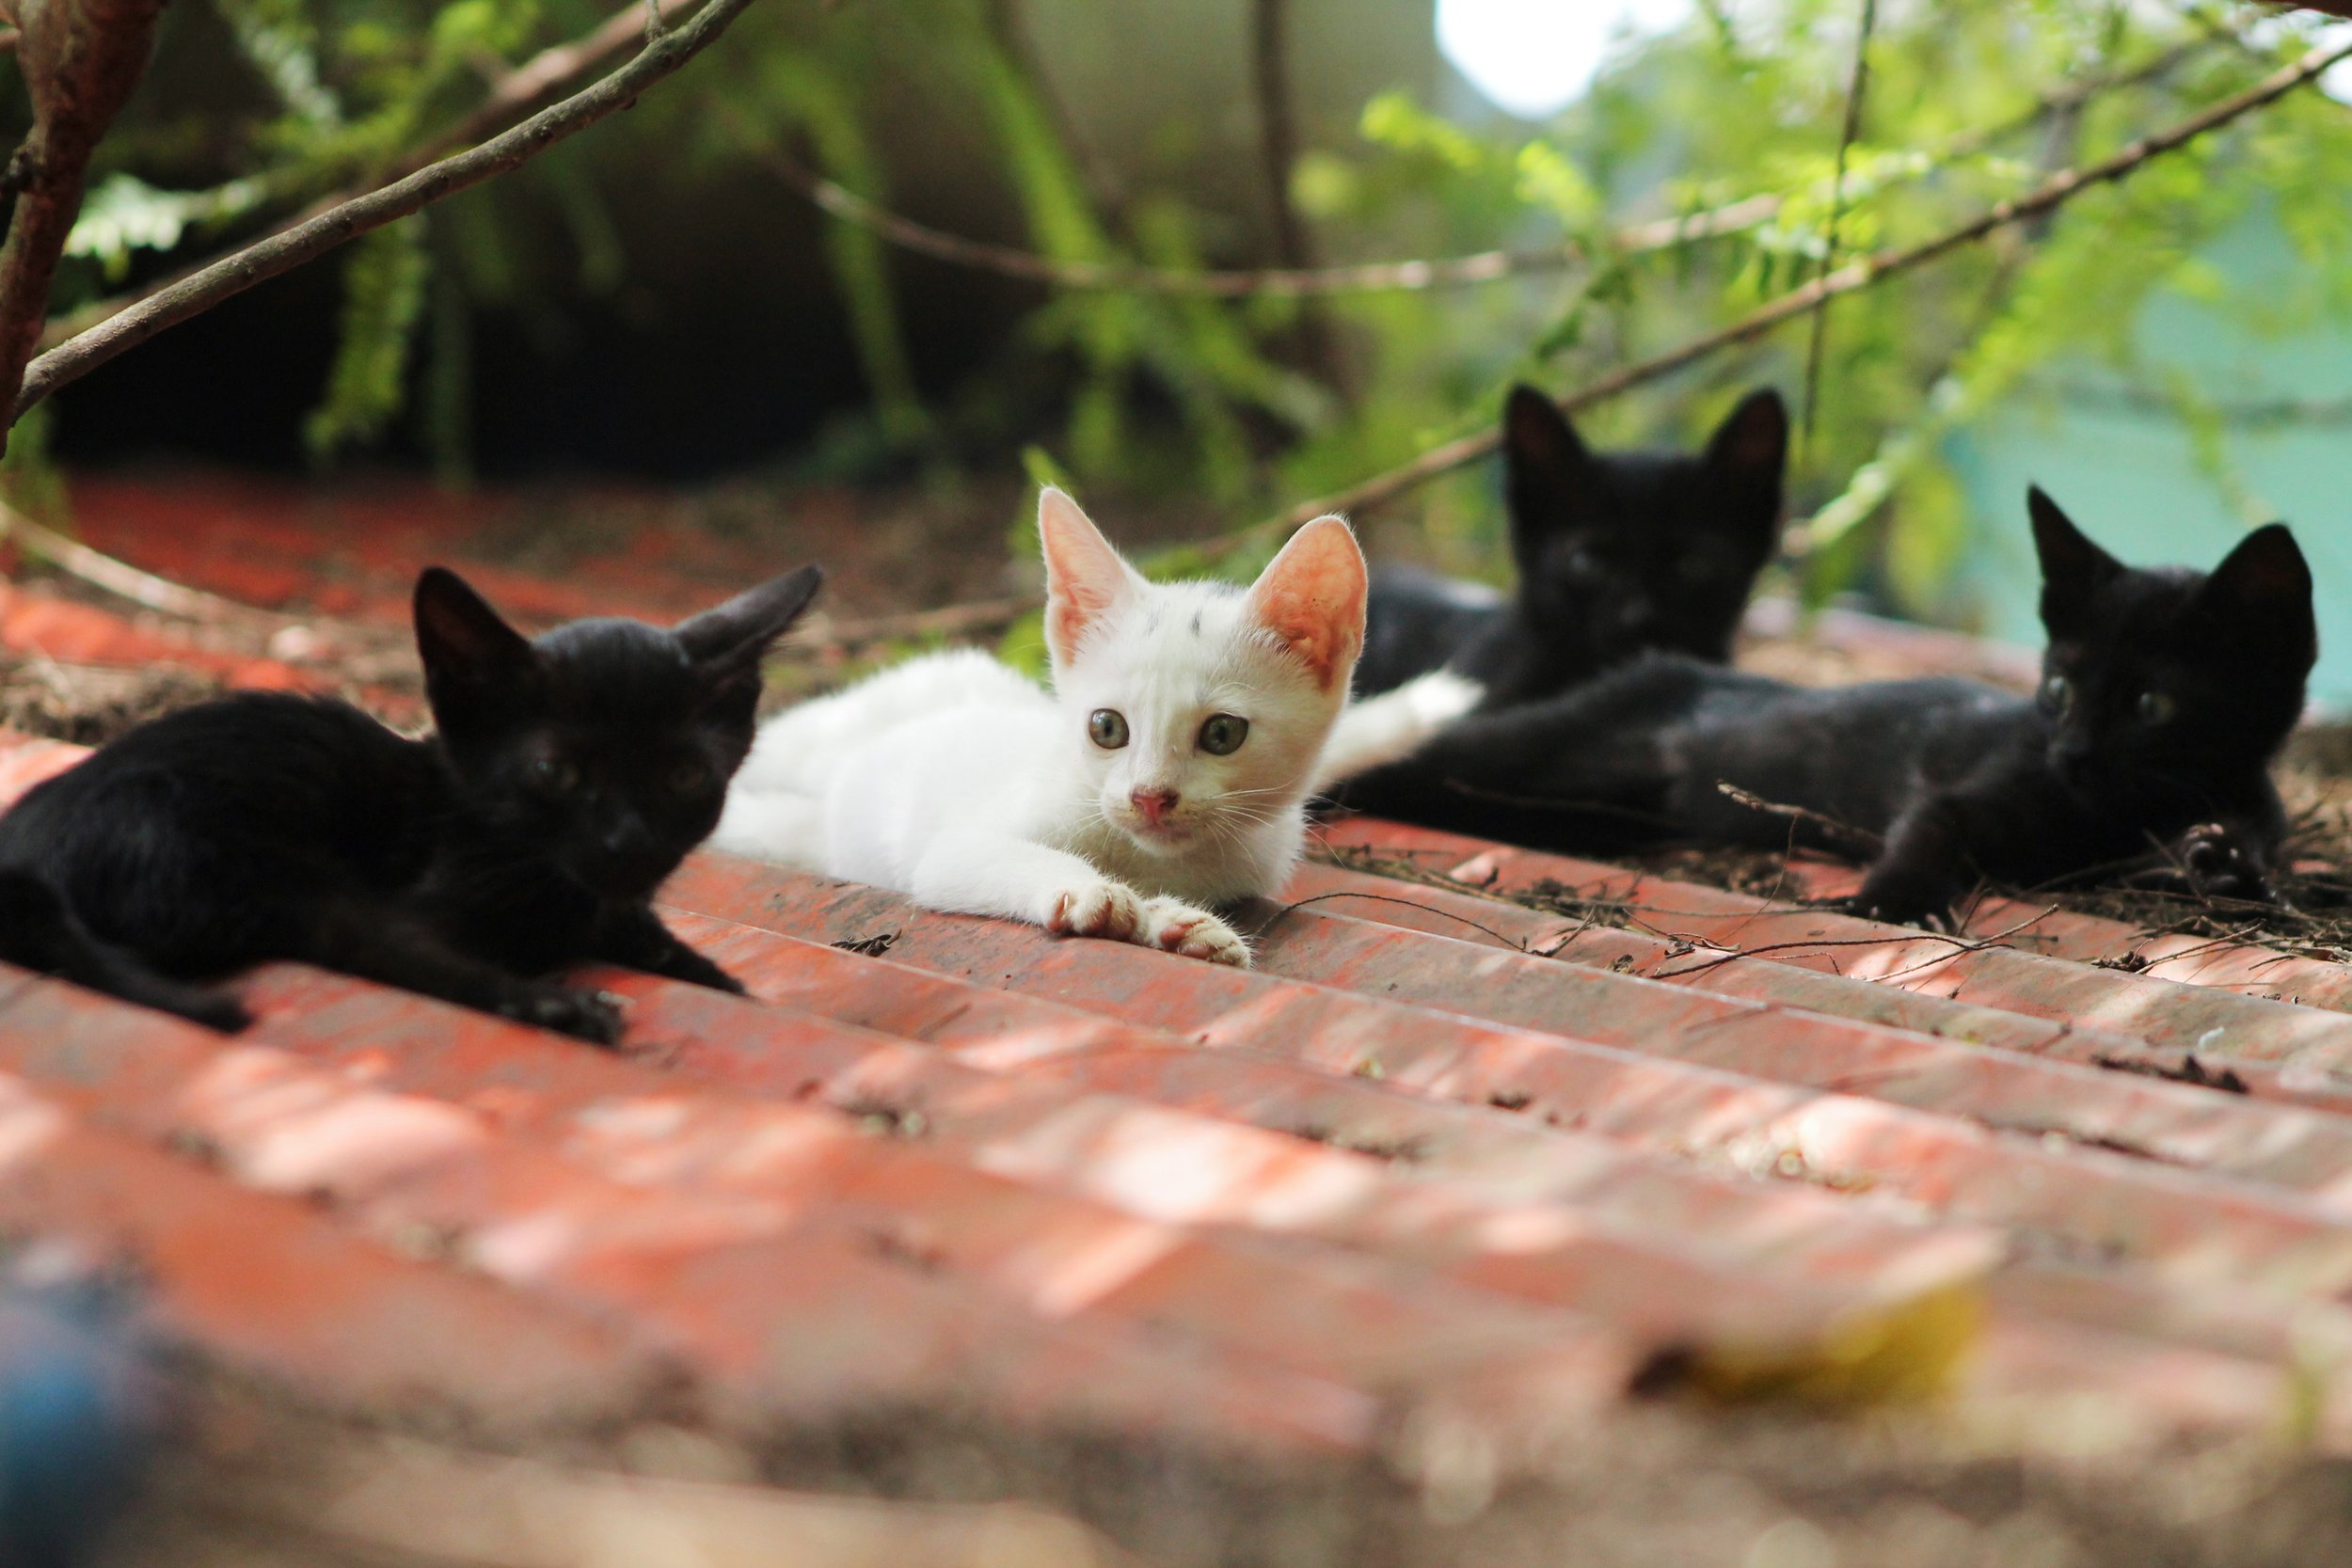 We offer no-cost services for feral, stray, + barn cats (donations accepted). Low-cost services are available for pet cats.